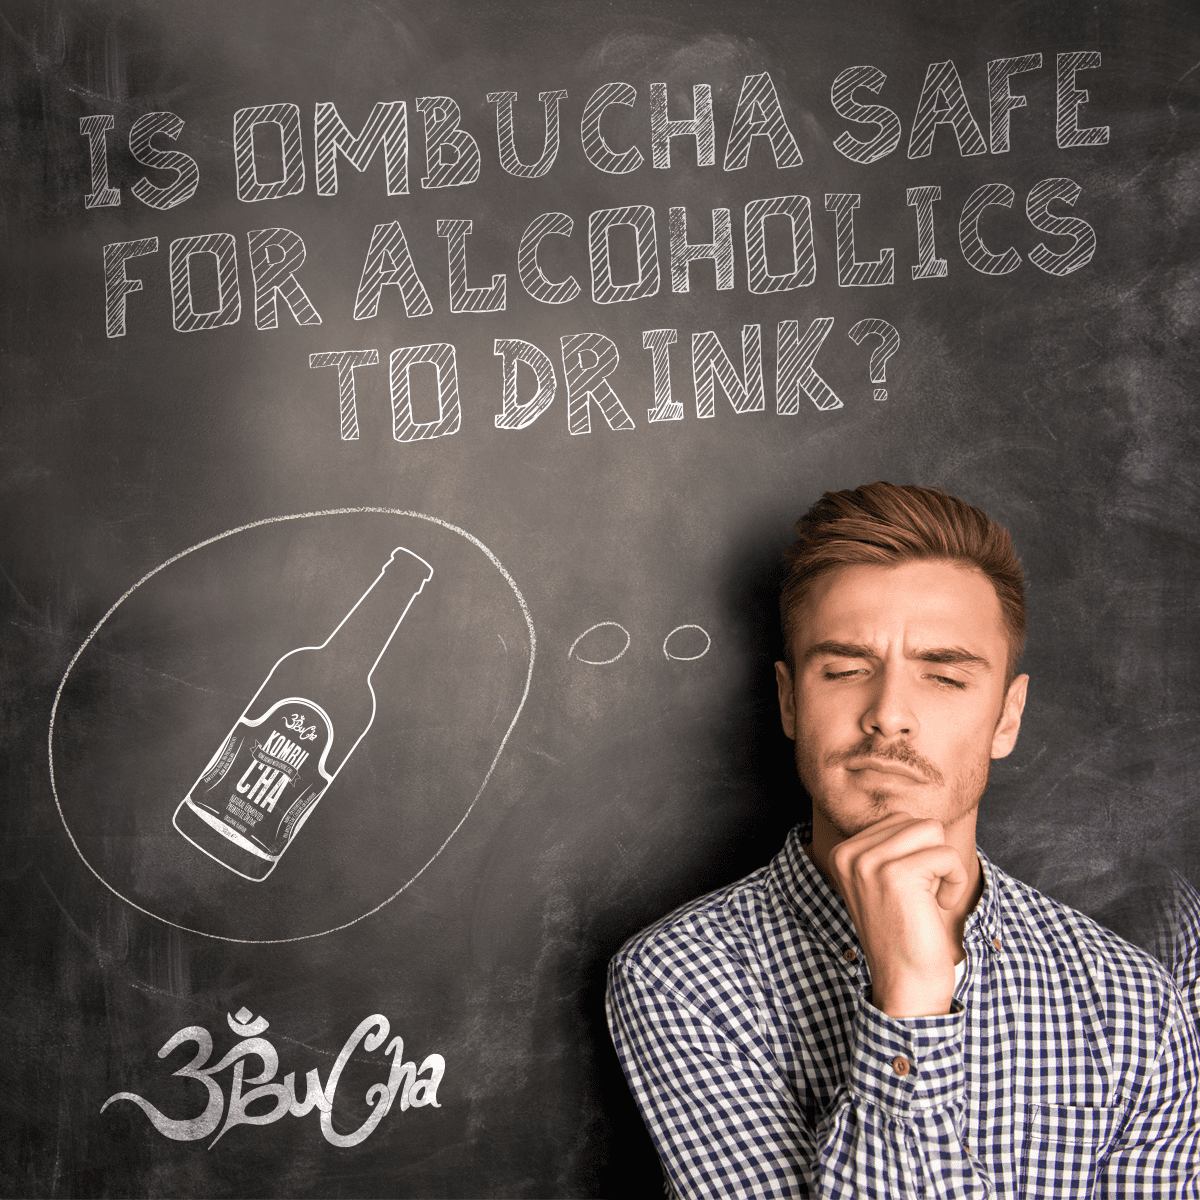 Is ombucha kombucha safe for alcoholics to drink